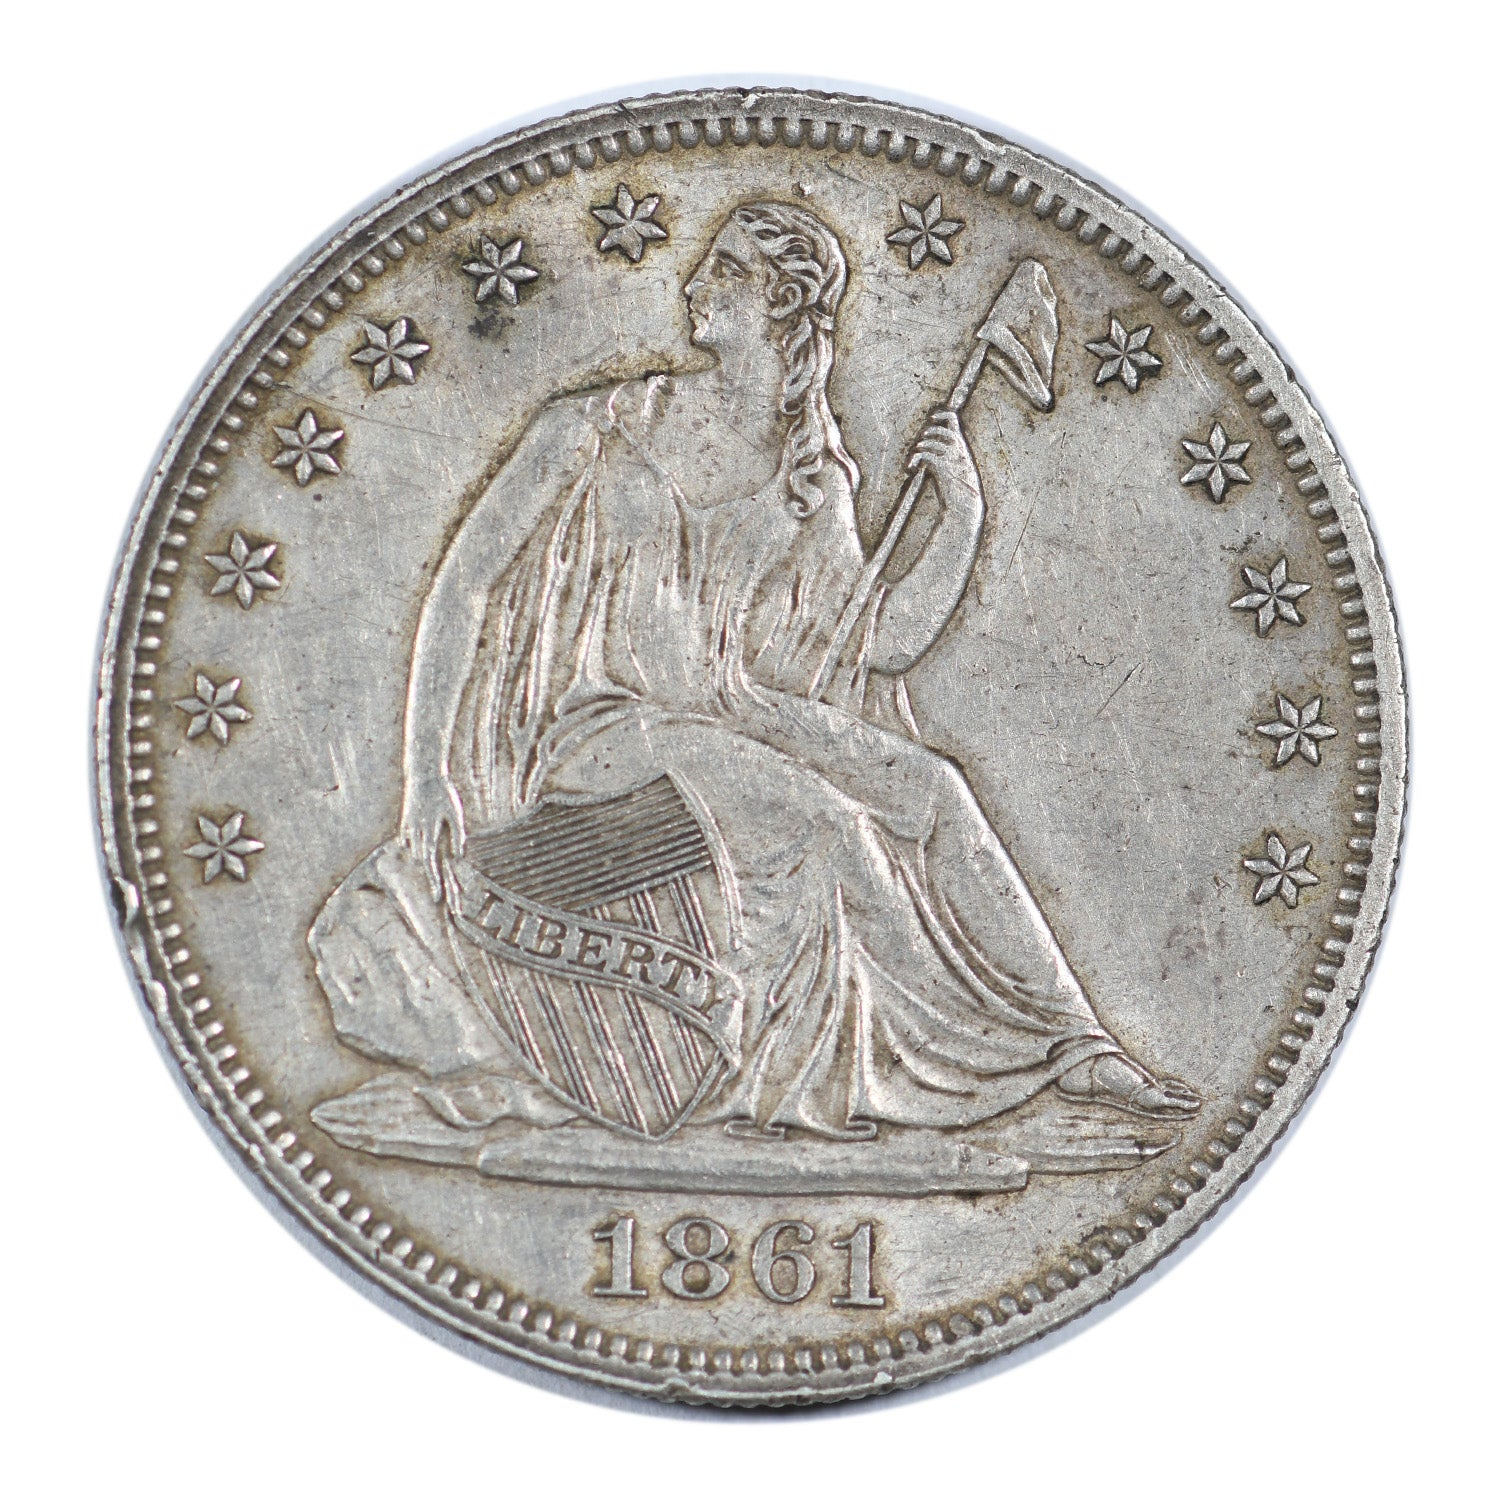 1861 Seated Liberty Half Dollar Extra Fine Condition